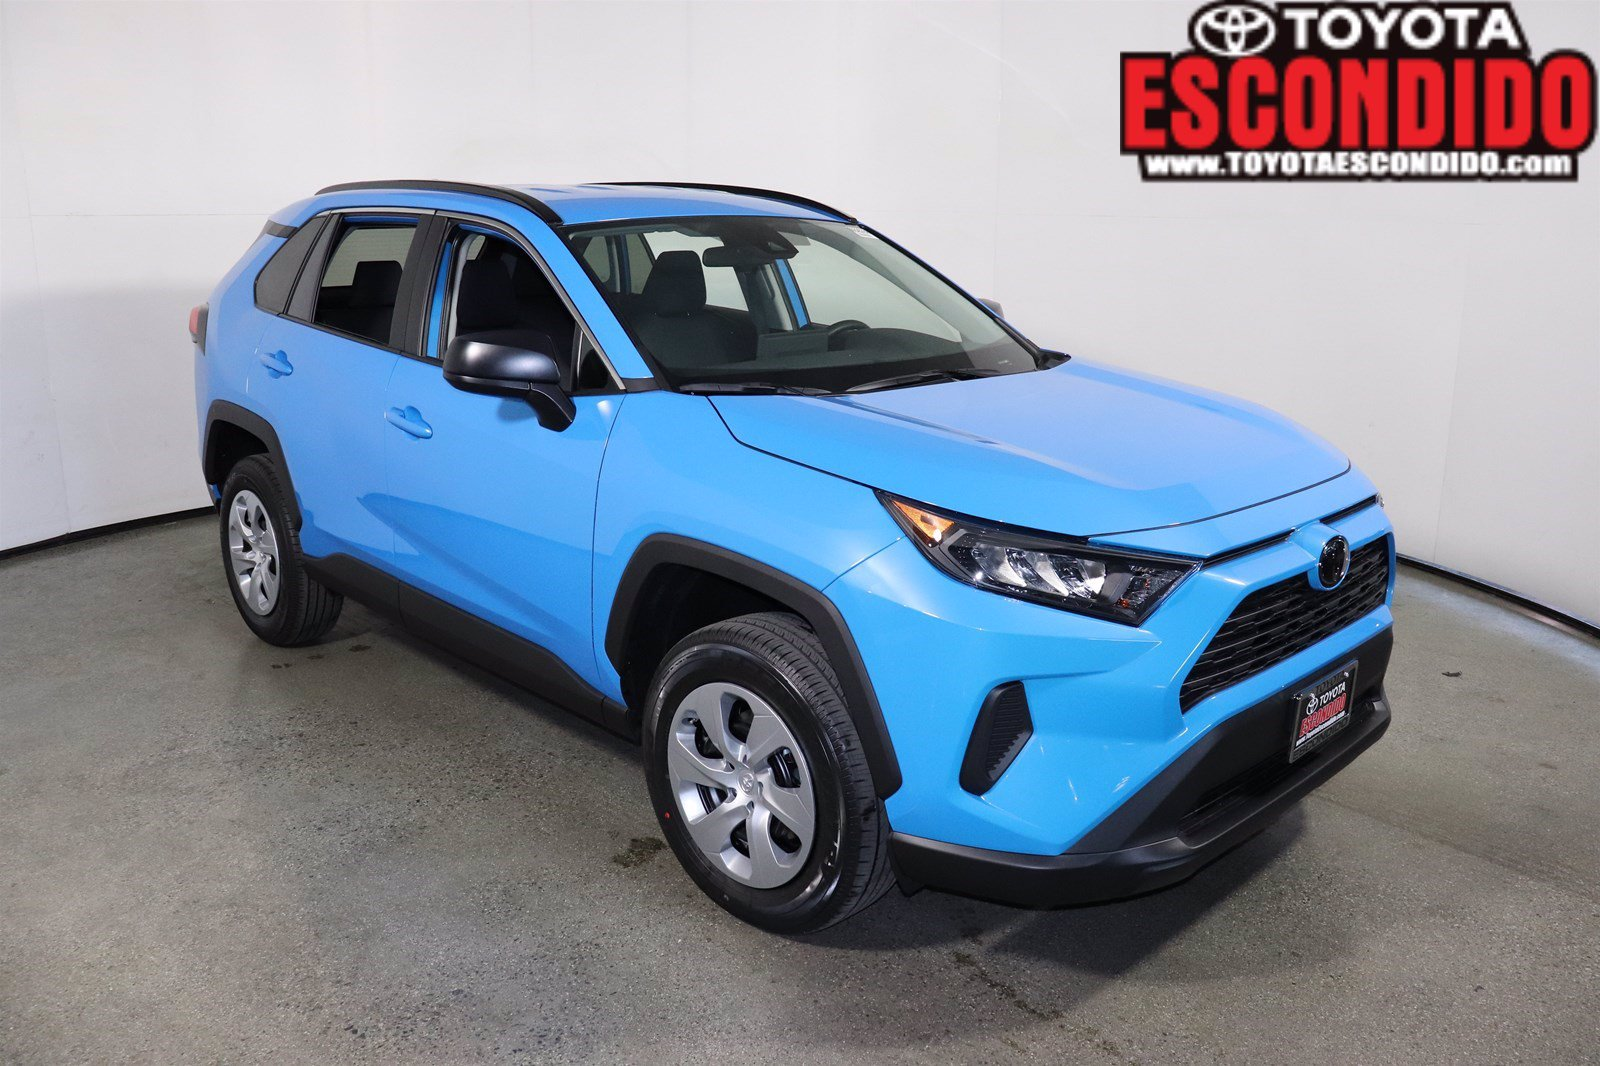 Lease a New 2020 Toyota RAV4 LE FWD Sport Utility for $169 a mo. + tax for 36 mo.